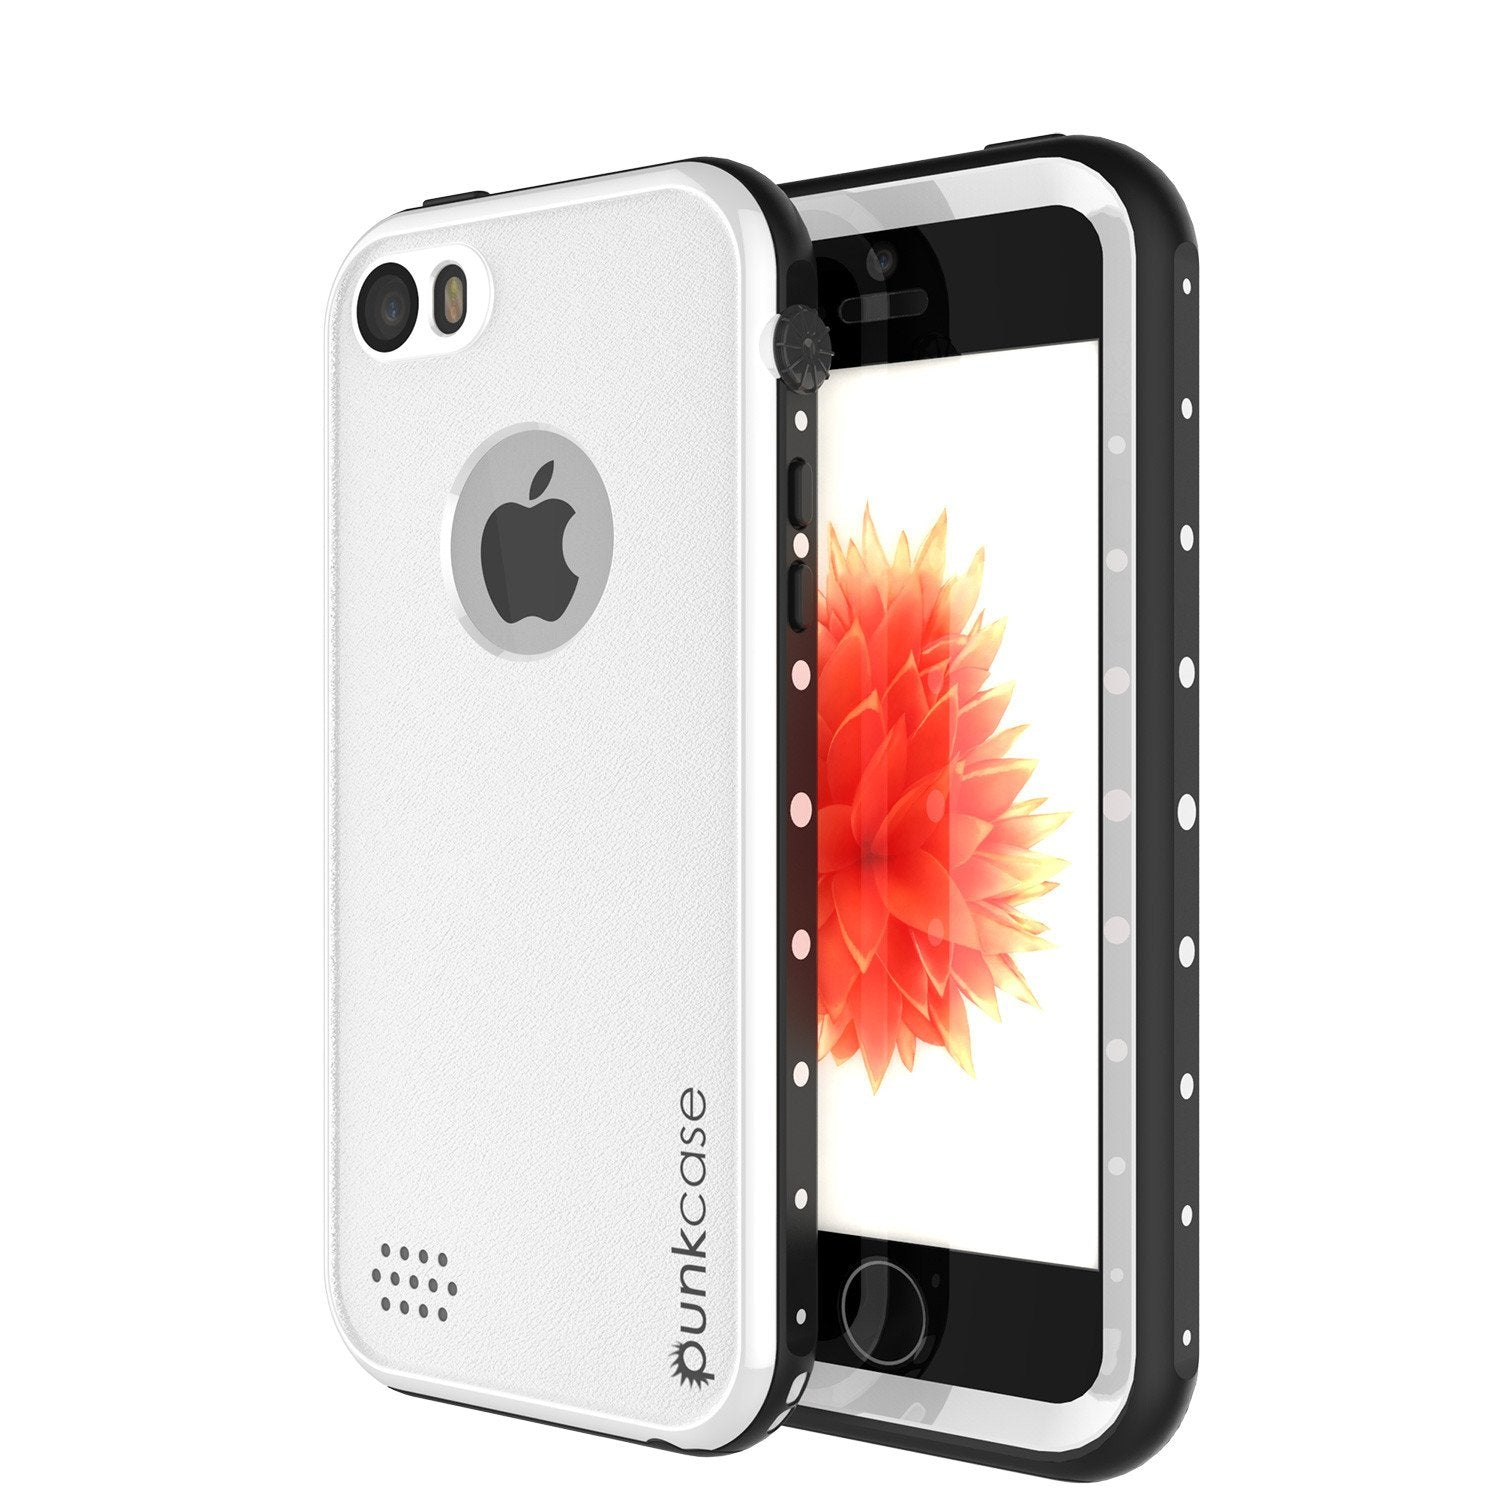 iPhone SE/5S/5 Waterproof Case, PunkCase StudStar White Shock/Dirt/Snow Proof | Lifetime Warranty - PunkCase NZ